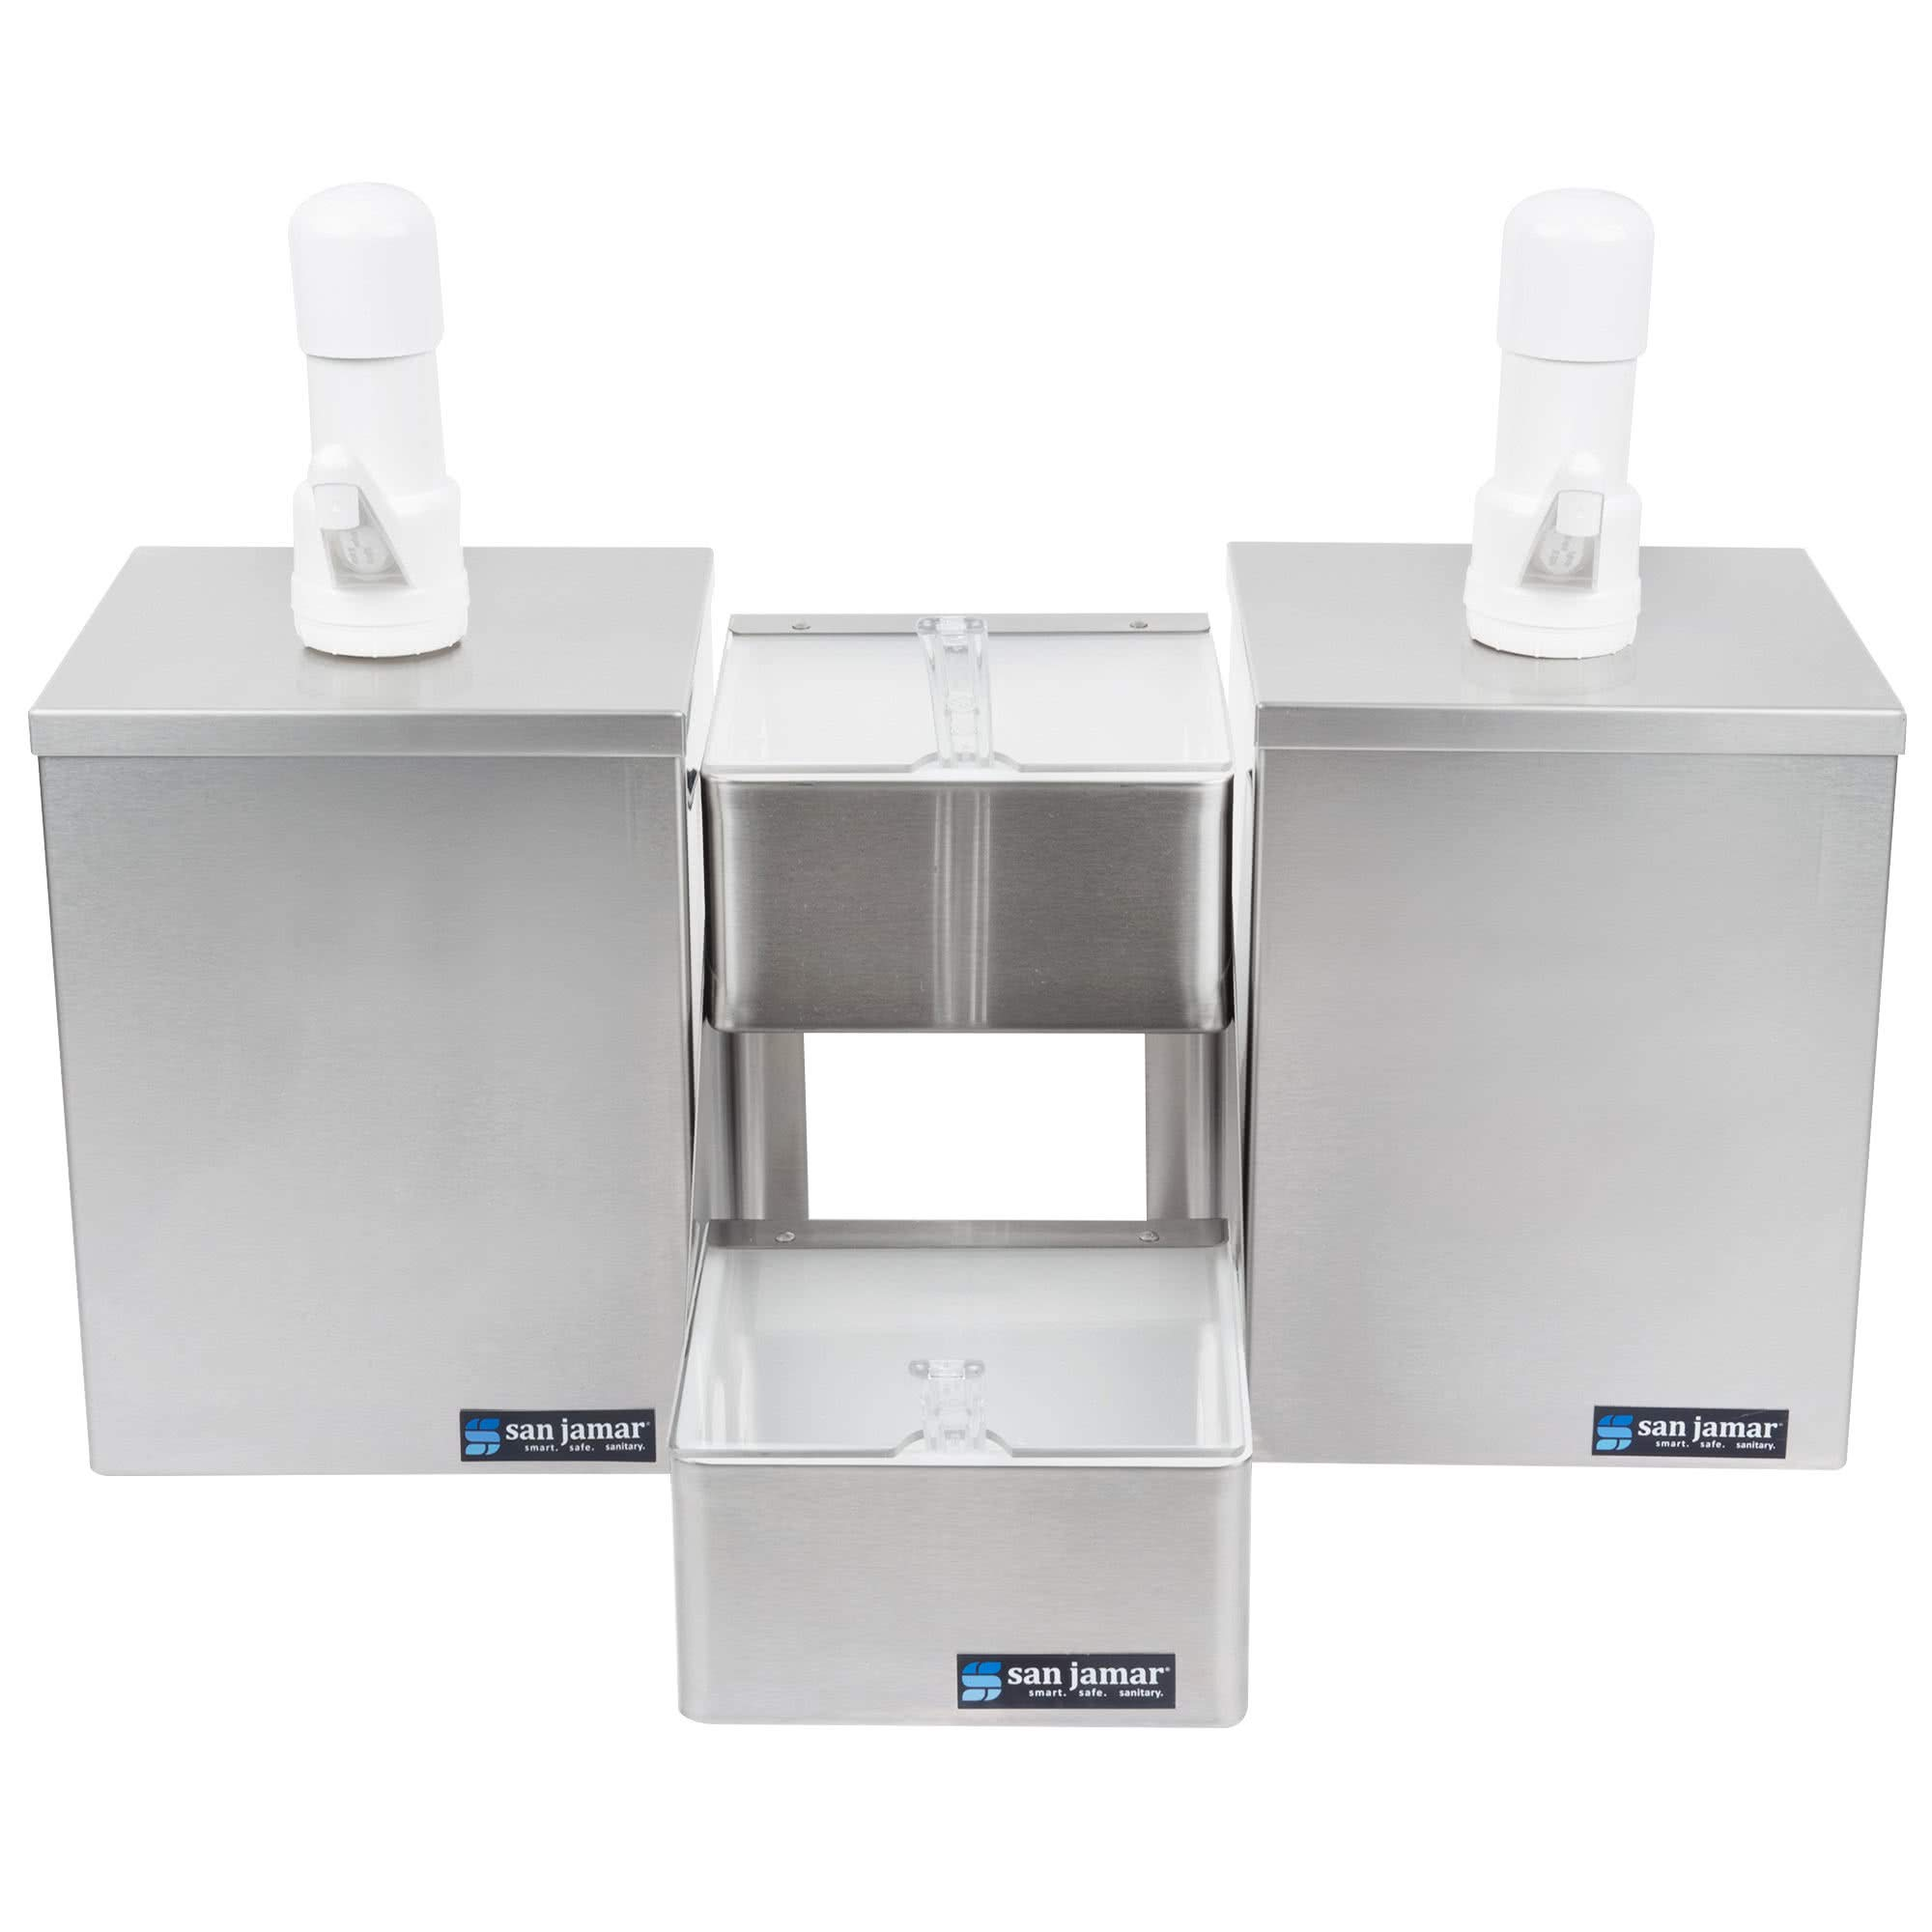 TableTop King P9826 Pump and Condiment Tray Center with 2 Trays and 2 Pump Boxes by TableTop King